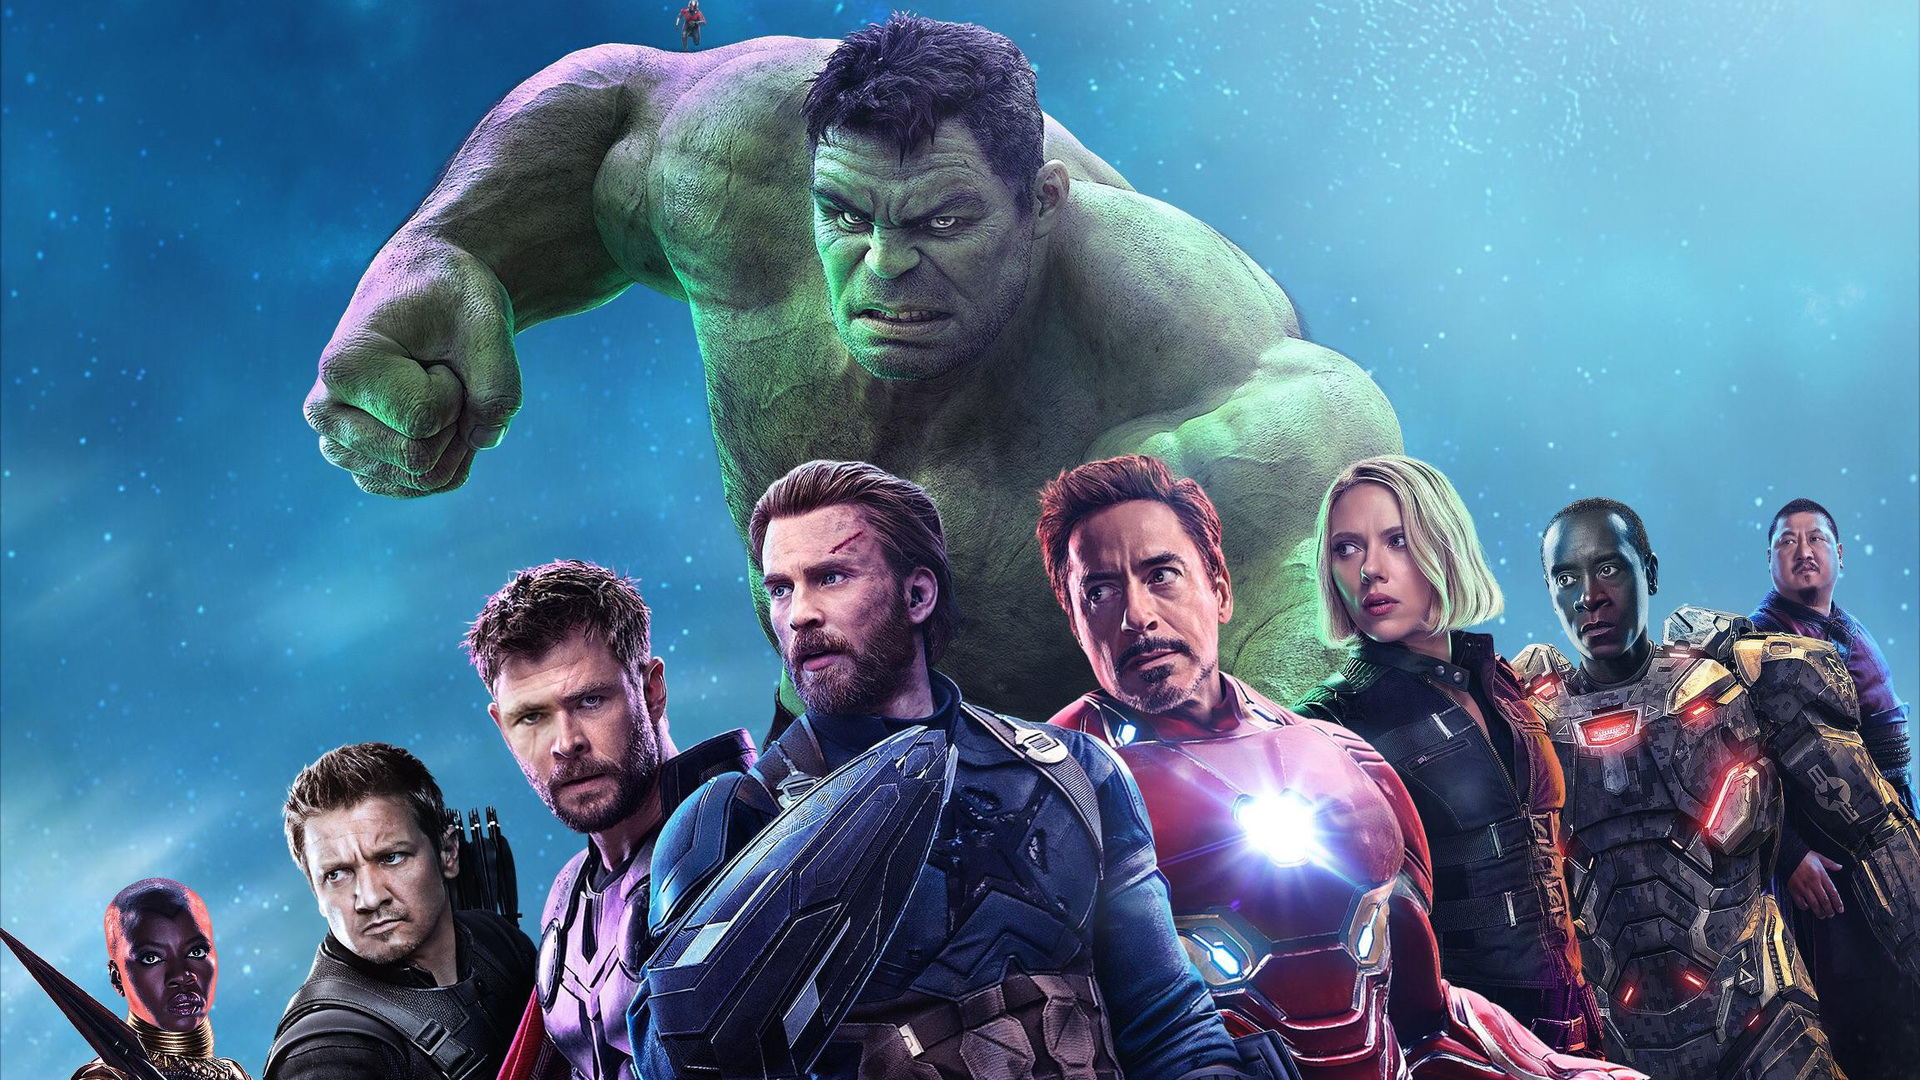 1920x1080 Avengers End Game 2019 Movie Laptop Full Hd 1080p